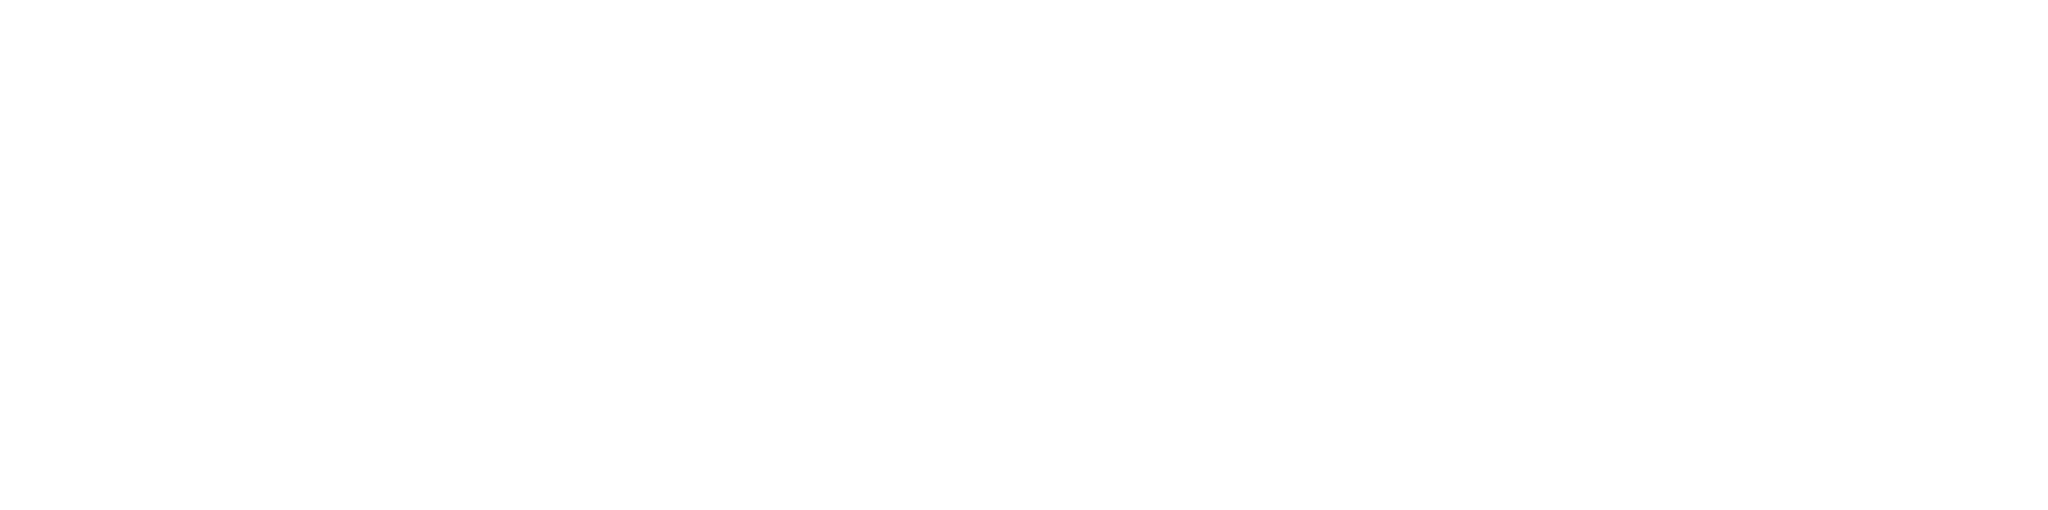 Zigdon Enterprises logo